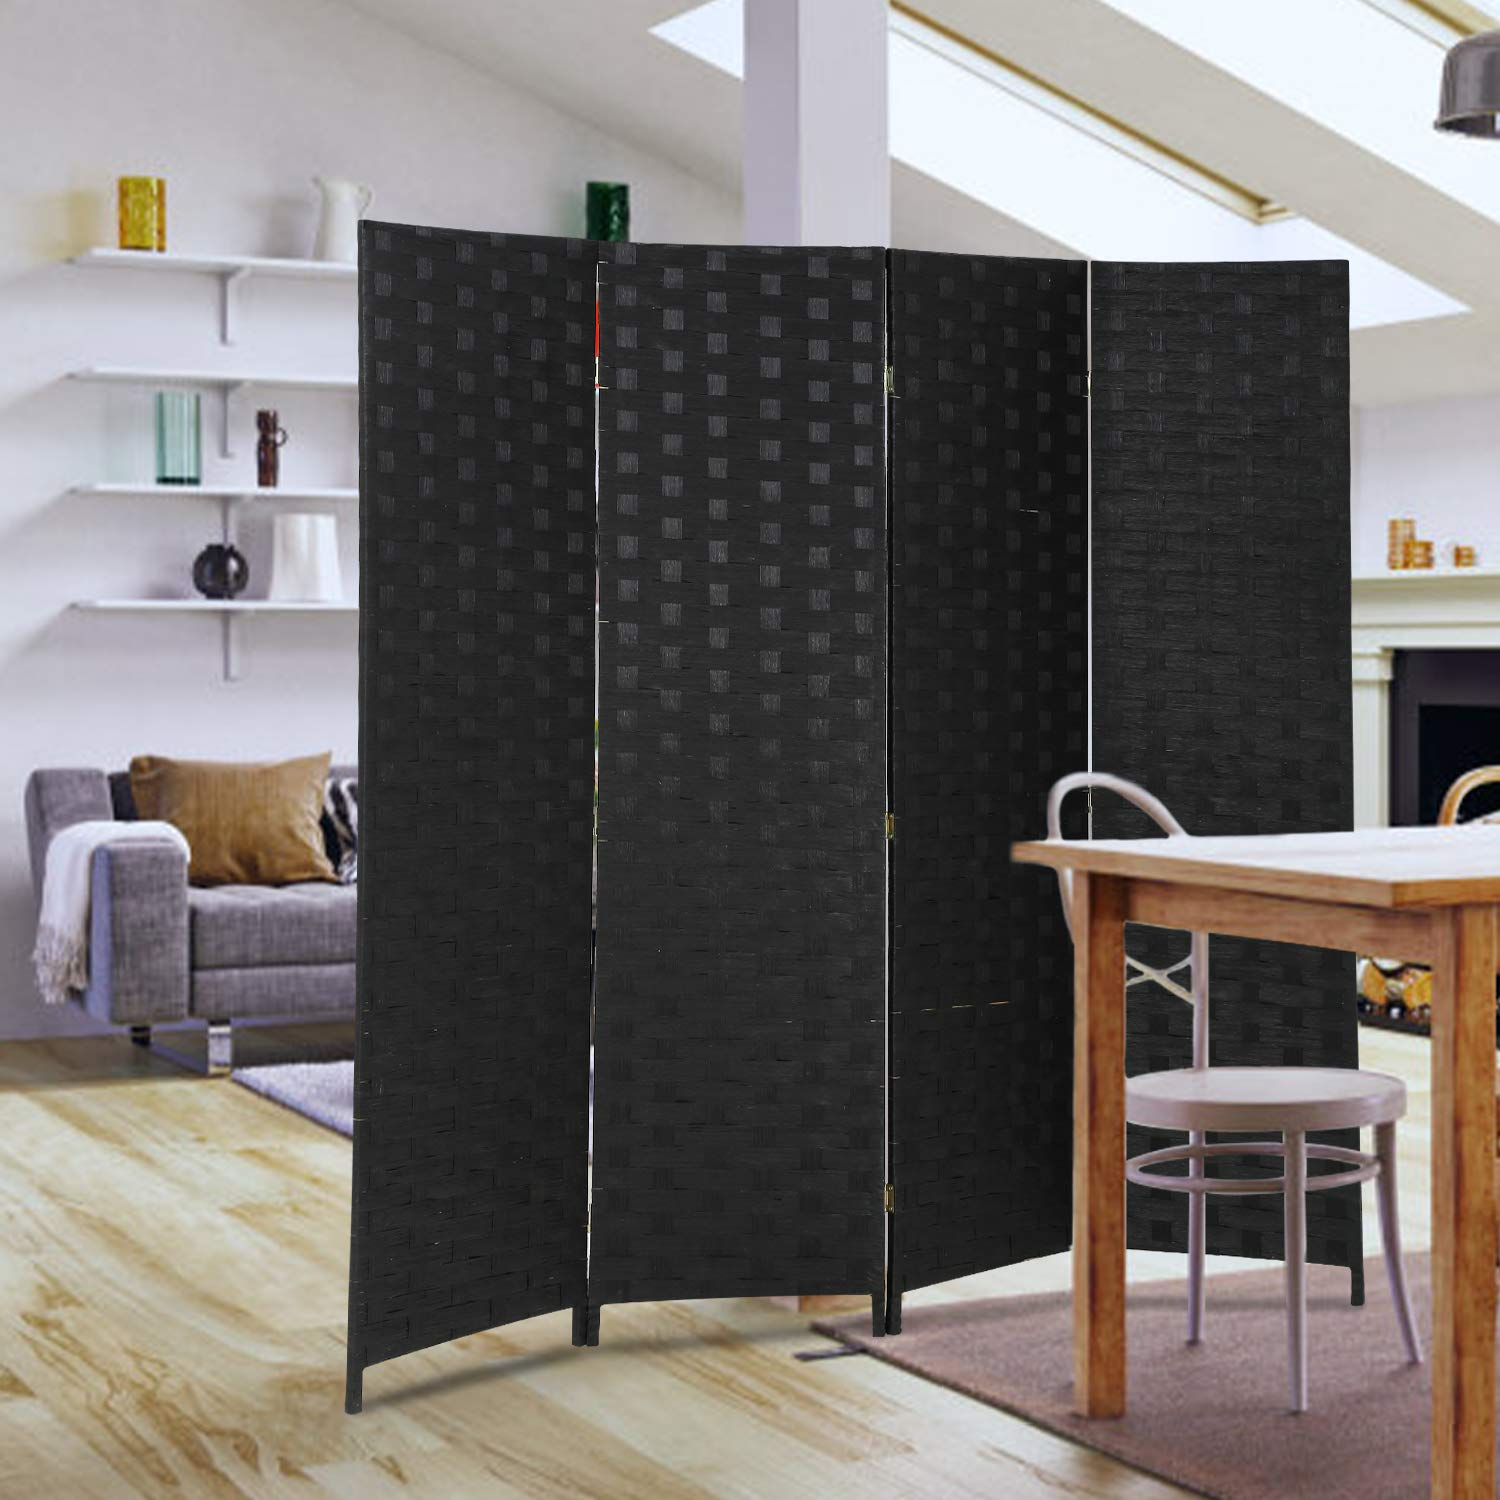 Swell Room Divider Wood Screen 4 Panel Wood Mesh Woven Design Room Screen Divider Folding Portable Partition Screen Screen Wood For Home Office Beutiful Home Inspiration Xortanetmahrainfo